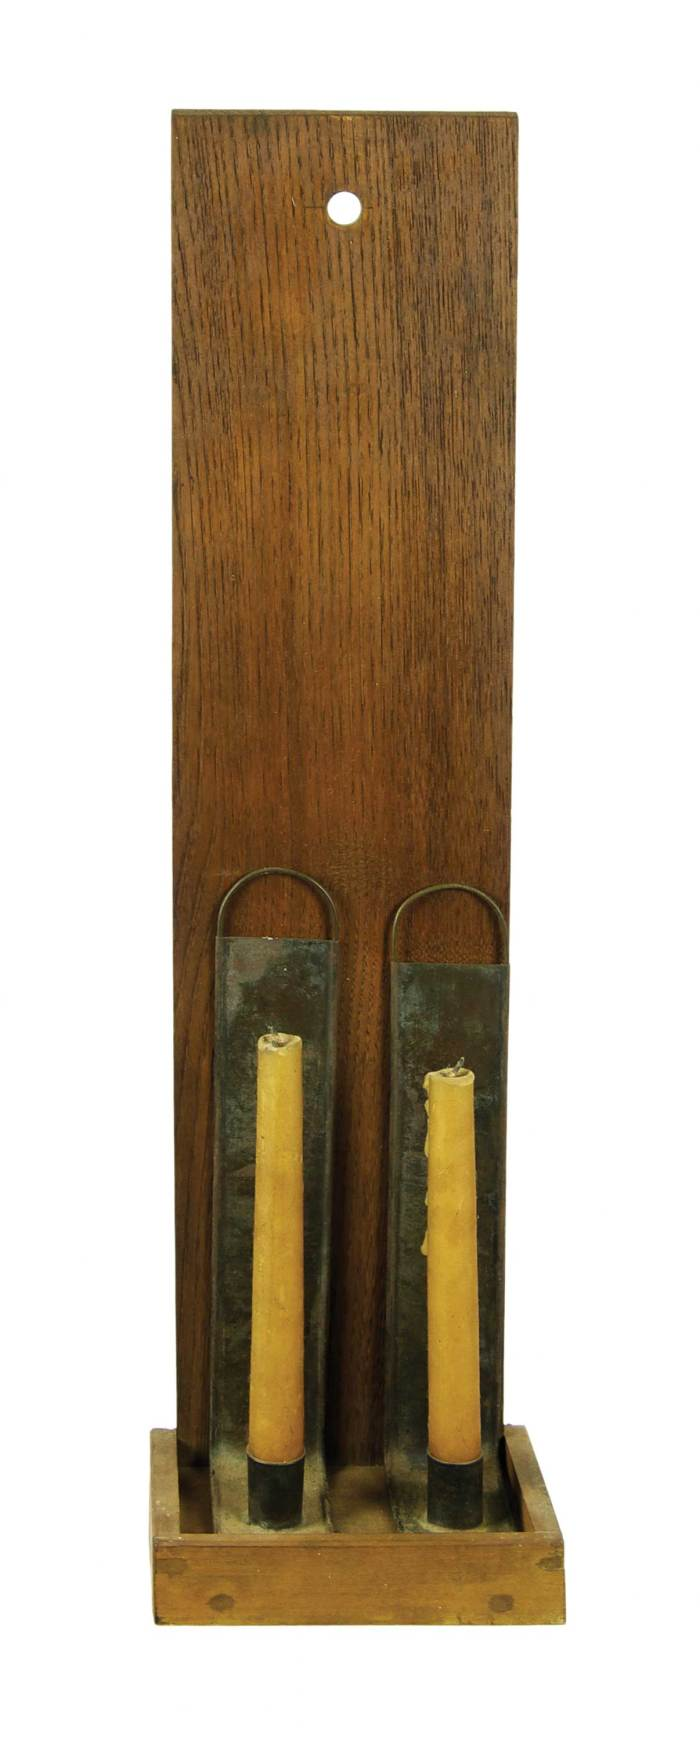 Lot 70: Very Rare Candle Sconce